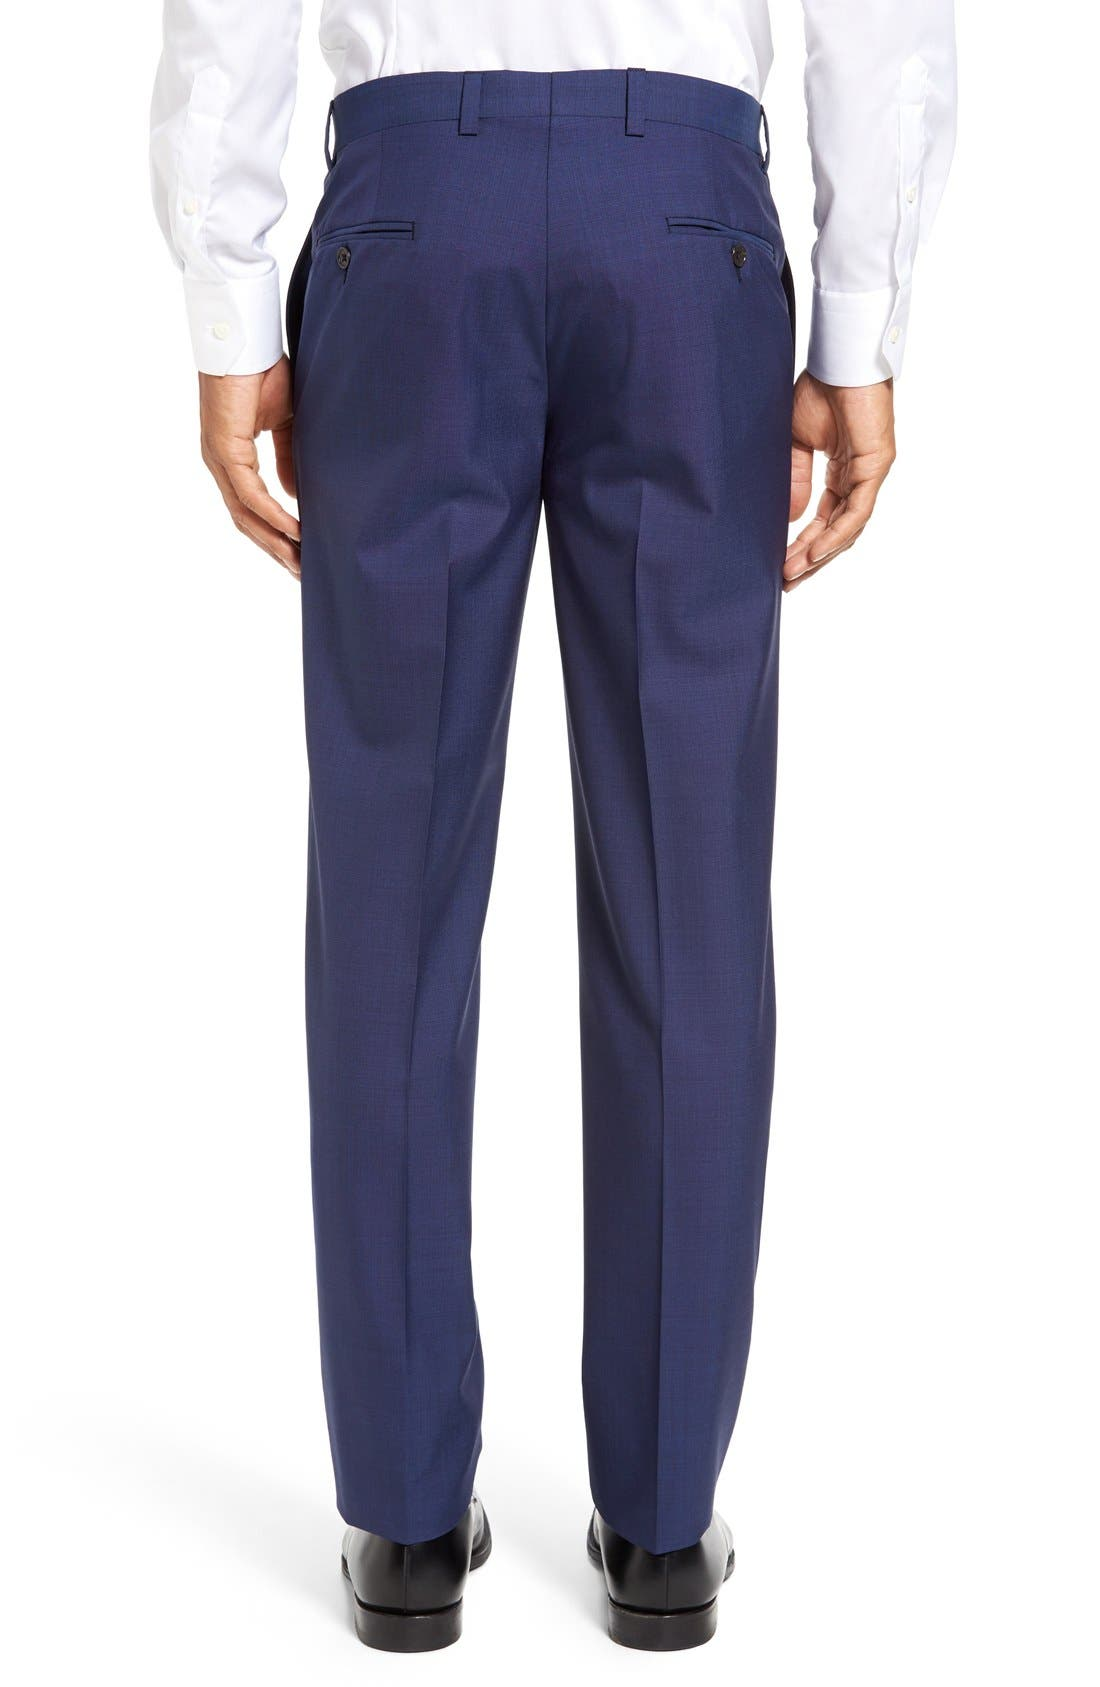 TED BAKER LONDON, Jefferson Flat Front Solid Wool Trousers, Alternate thumbnail 8, color, BLUE